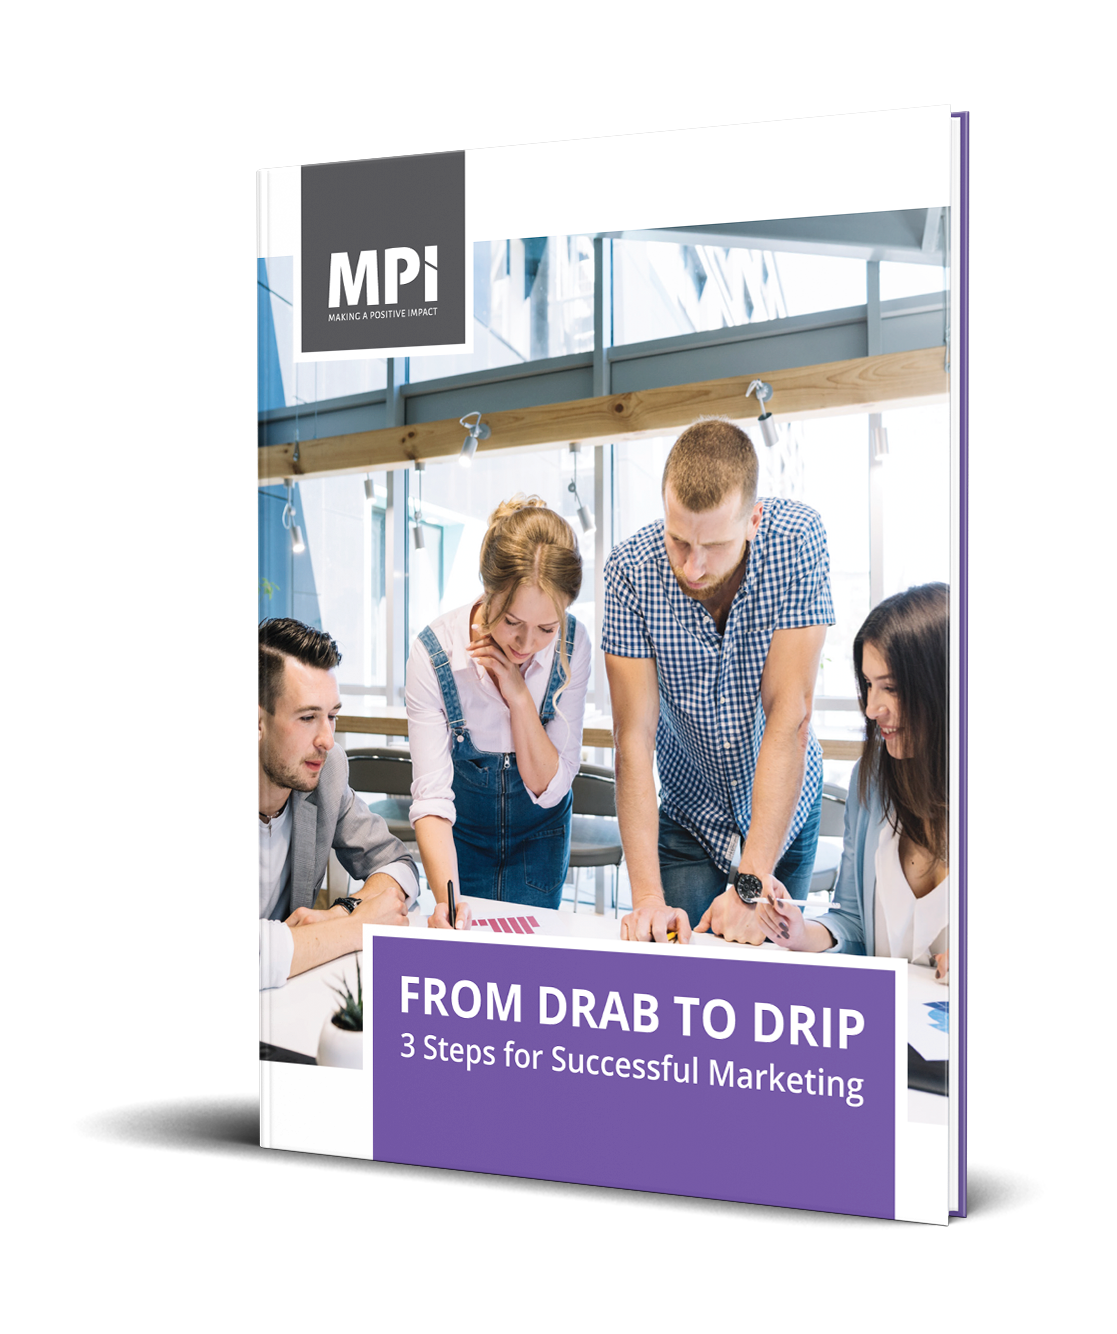 Boost sales with drip marketing